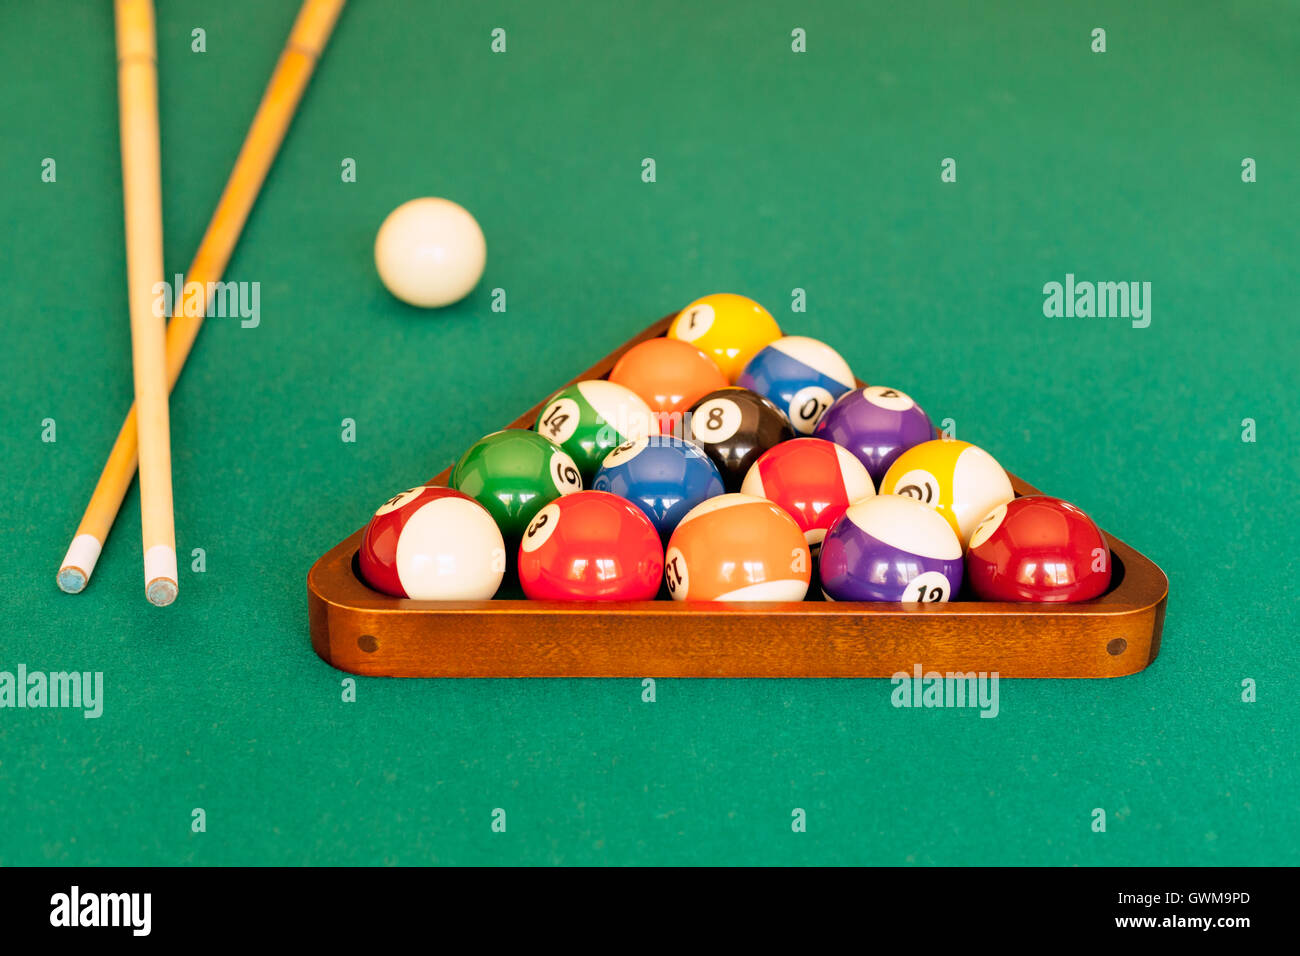 Pool cue sticks, a cue ball and a rack of balls ready for a game of eight-ball pool. - Stock Image